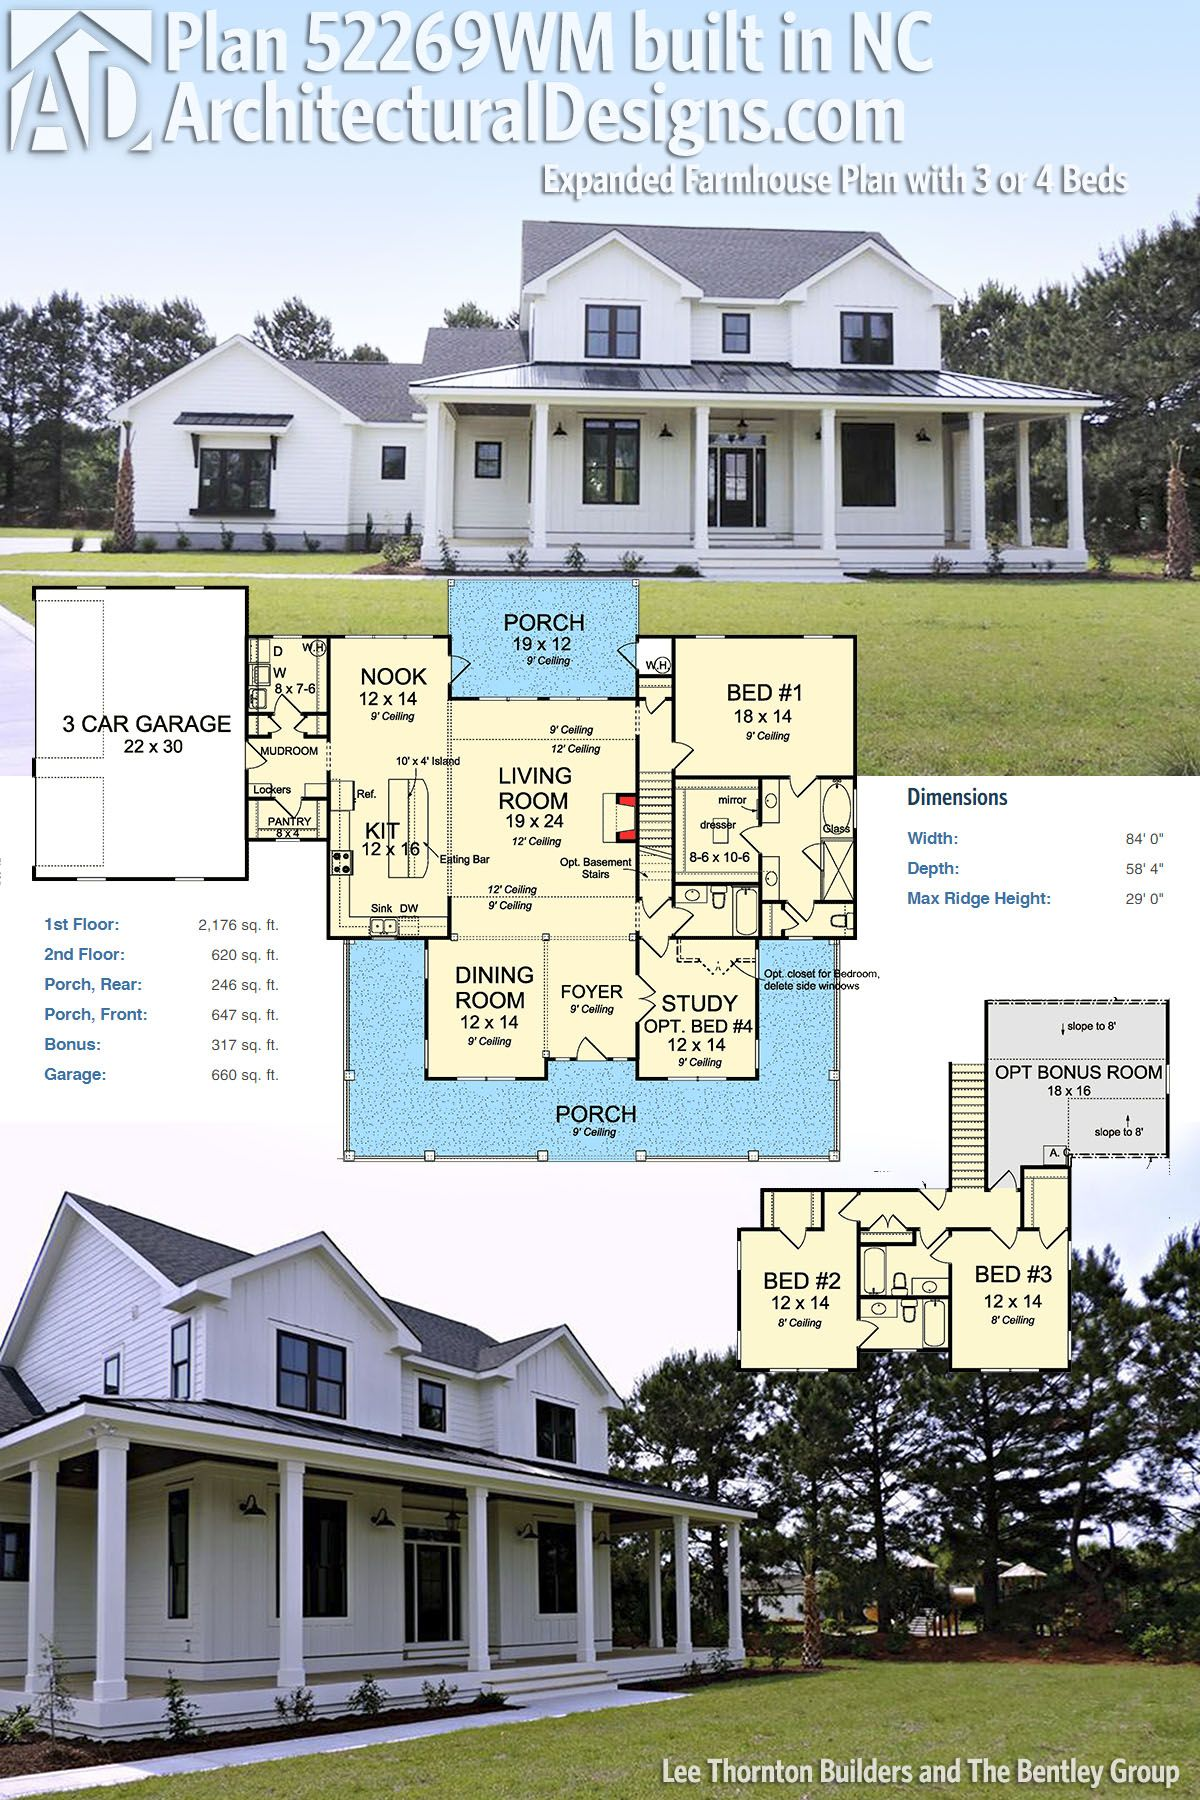 Architectural Designs Modern Farmhouse Plan 52269WM was